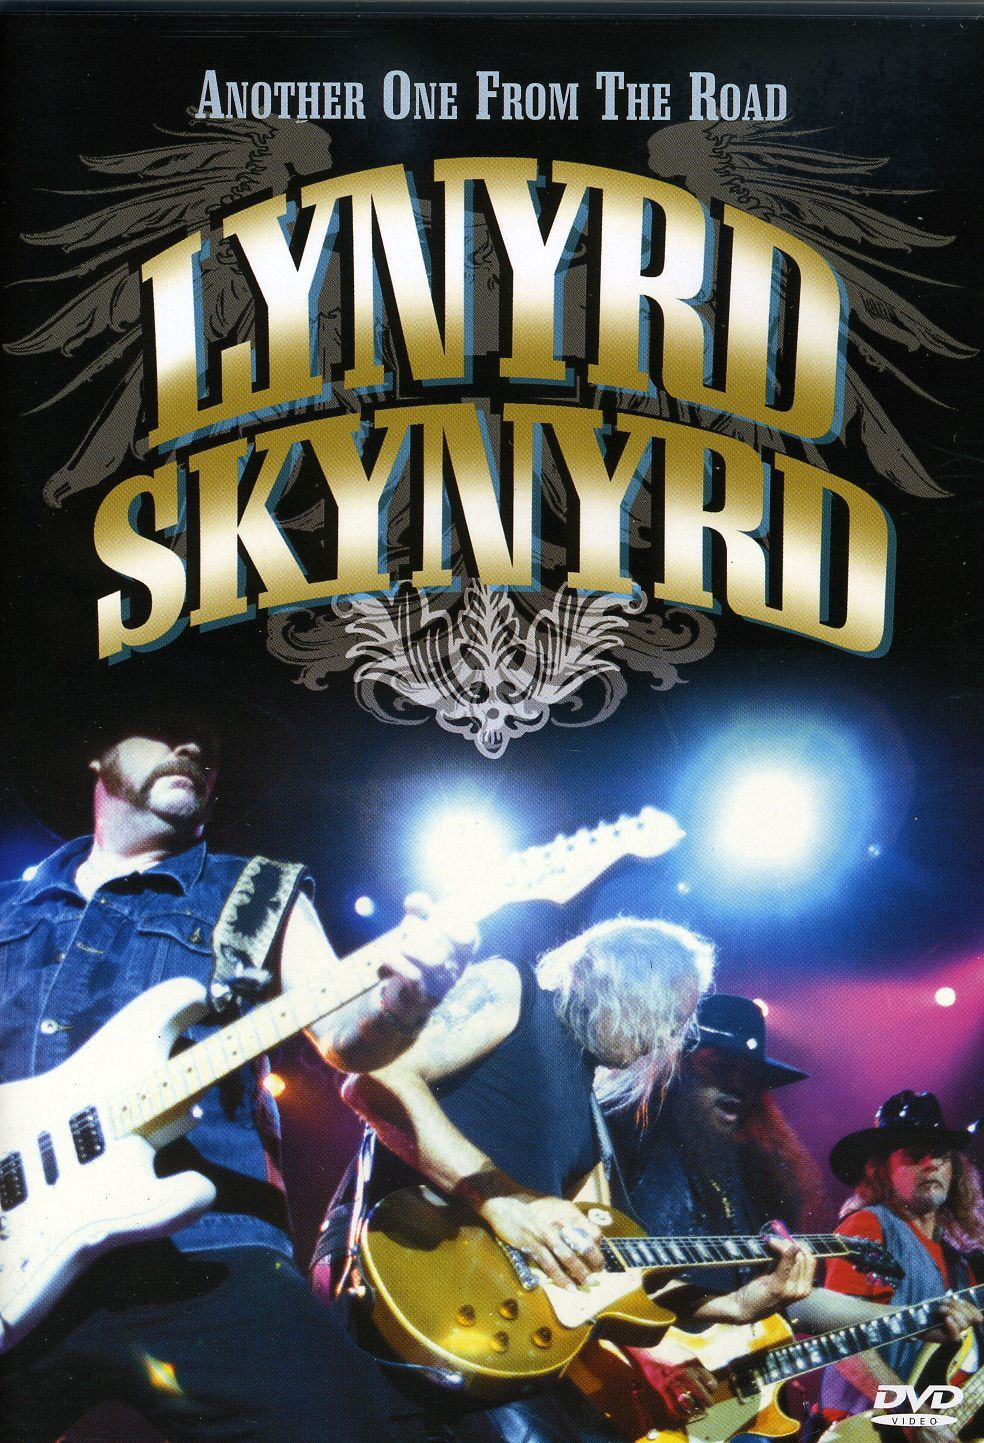 Lynyrd Skynyrd: Another One from the Road